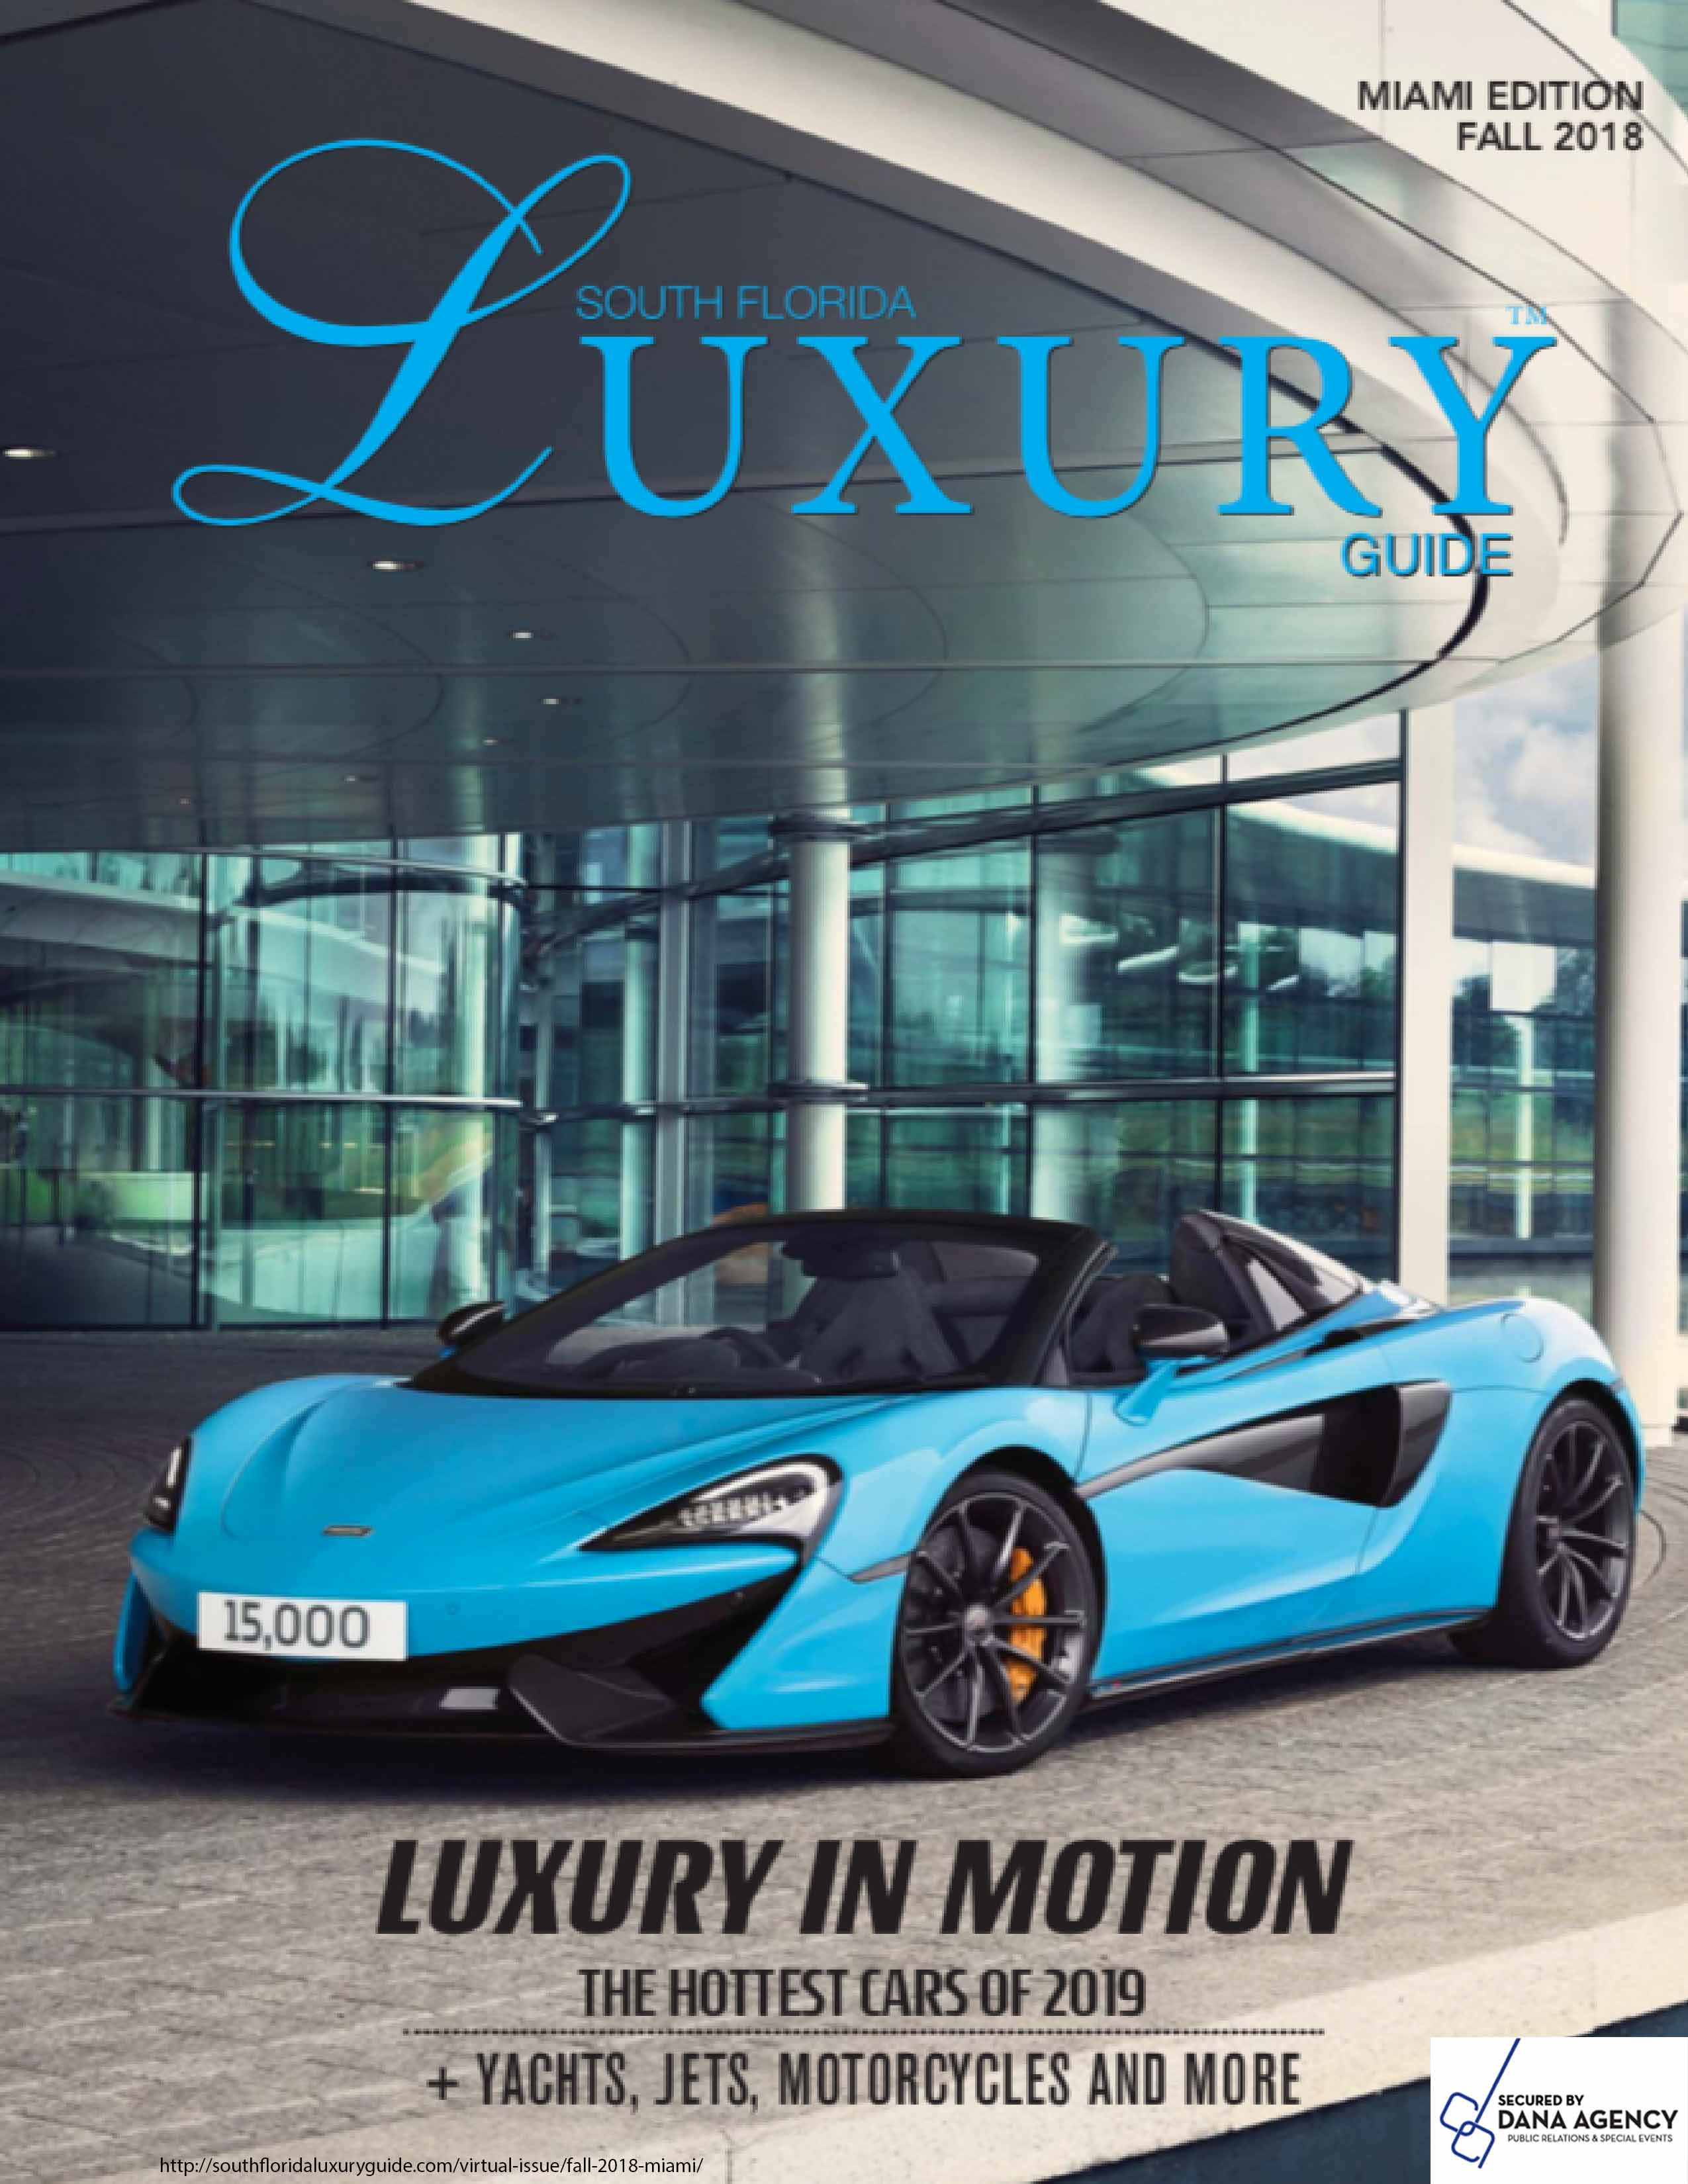 SouthFloridaLuxuryGuide_Fall2018_Online_Page1